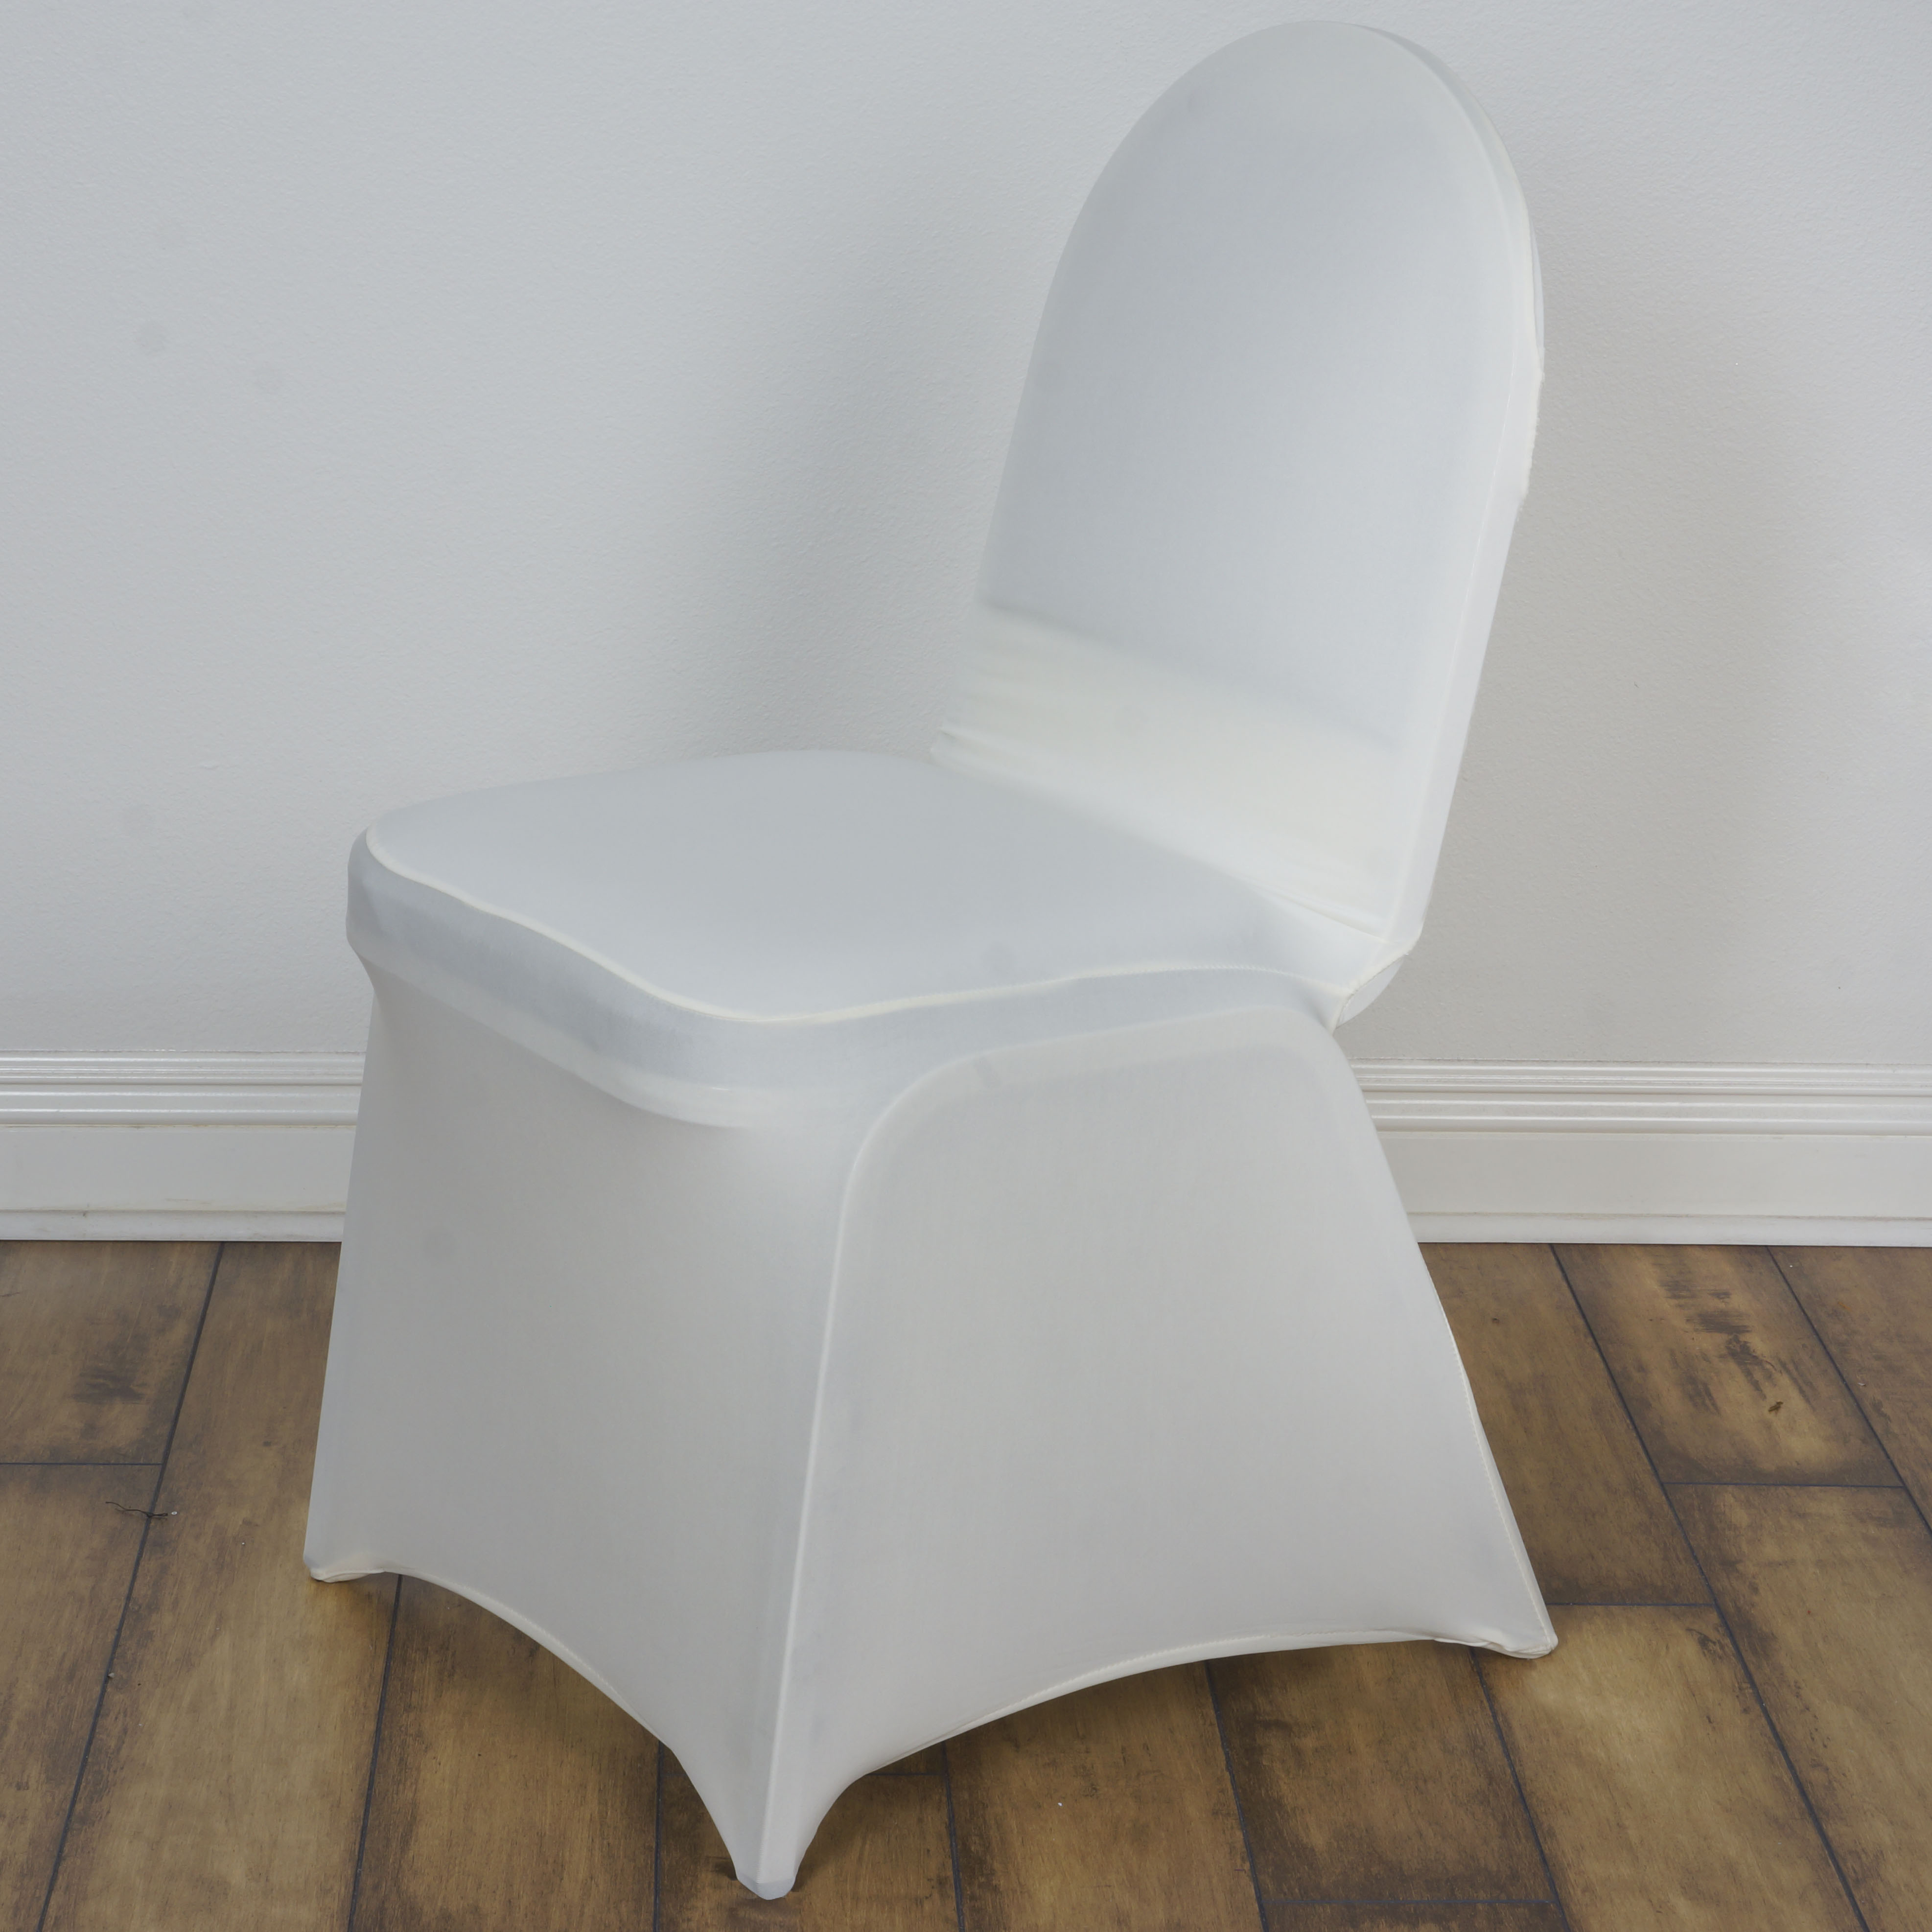 ebay ivory chair covers sashes for weddings 50 pcs madrid banquet with crisscross design